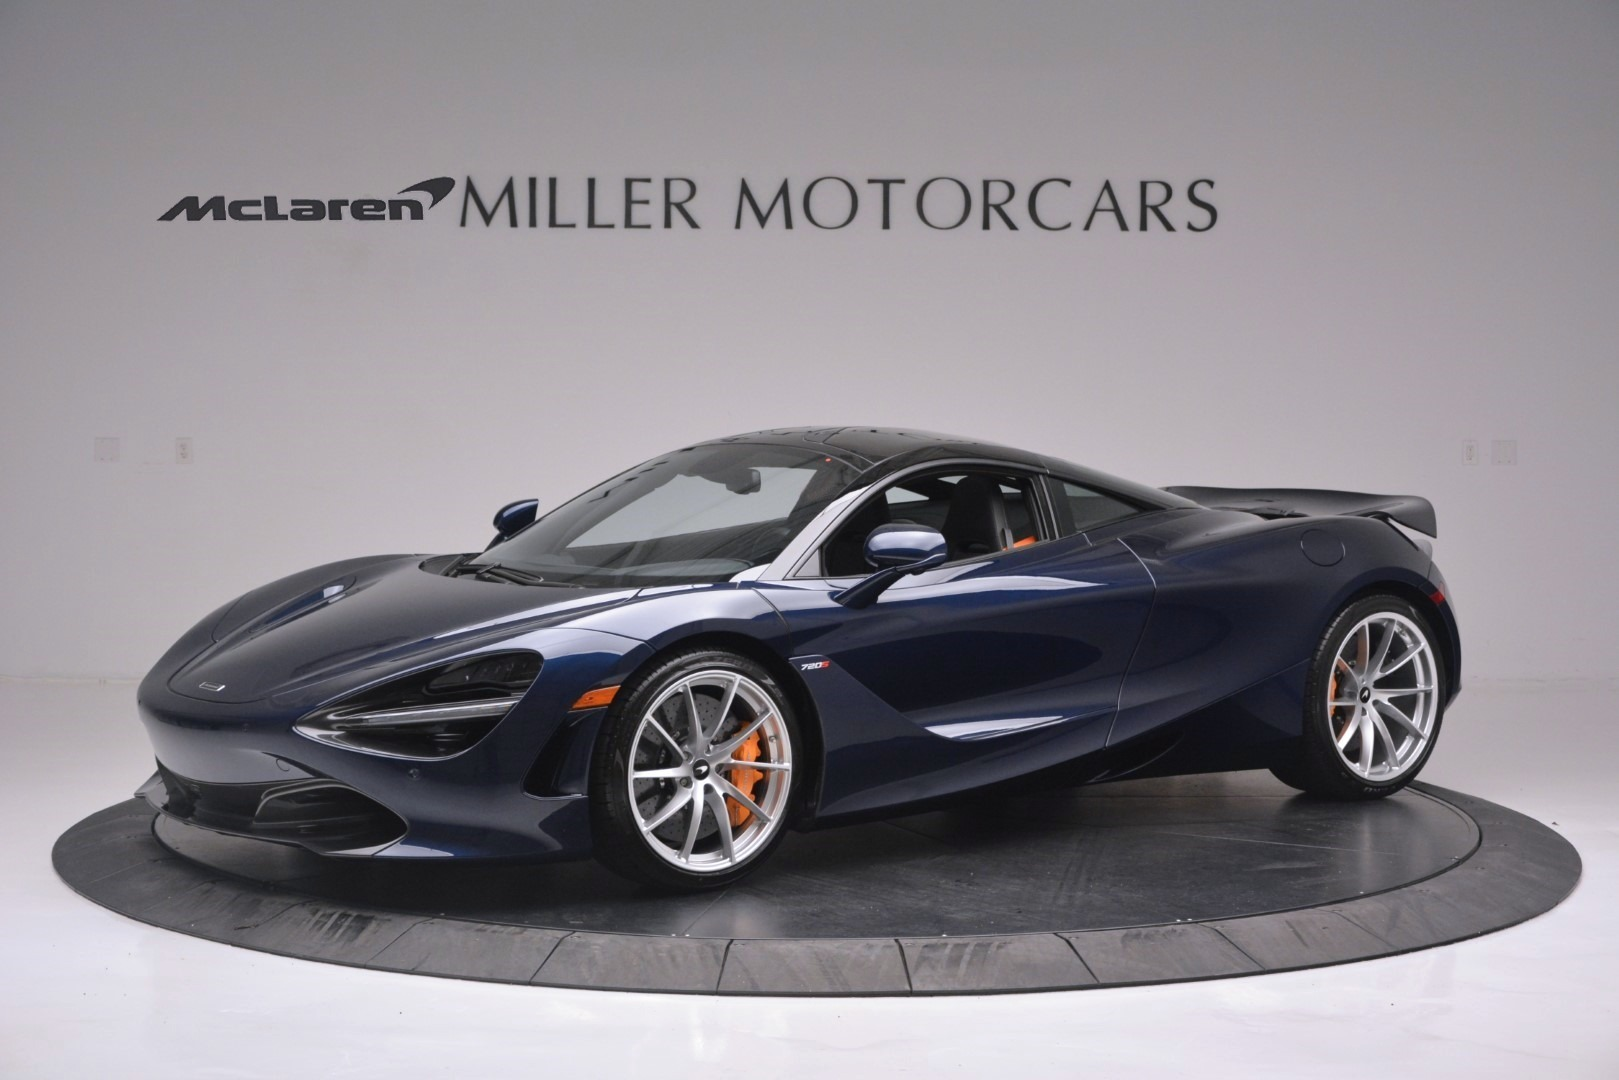 New 2019 McLaren 720S Coupe for sale Sold at Bentley Greenwich in Greenwich CT 06830 1